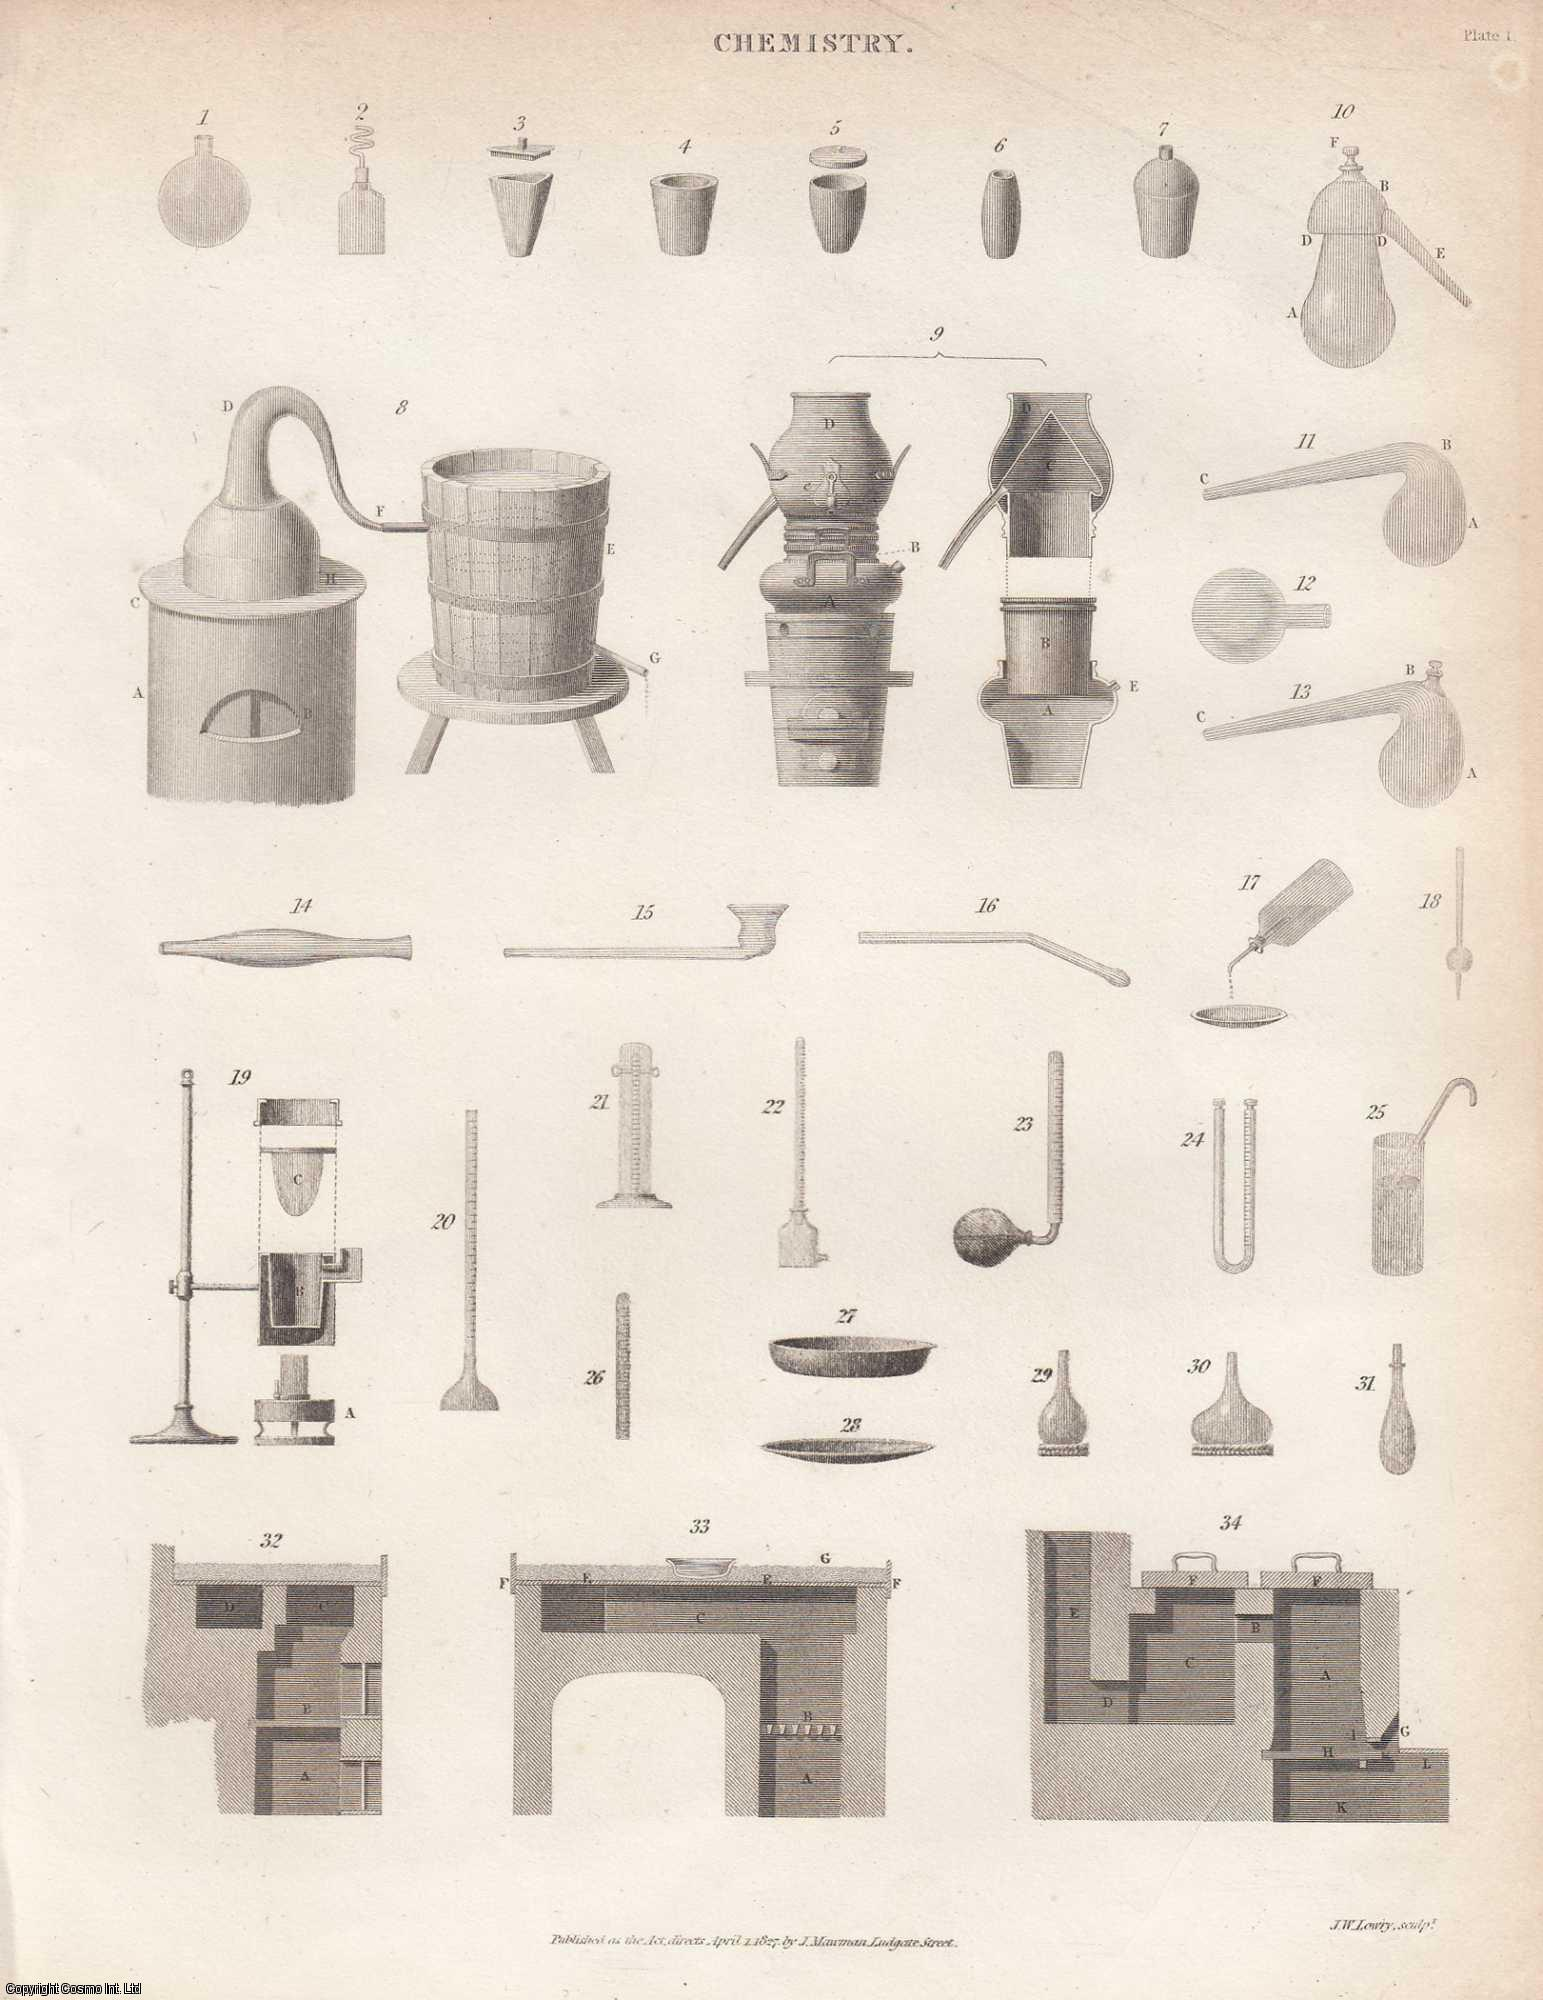 Chemistry.  An Article From the Encyclopaedia Metropolitana., Rev. Francis Lunn, F.R.S.